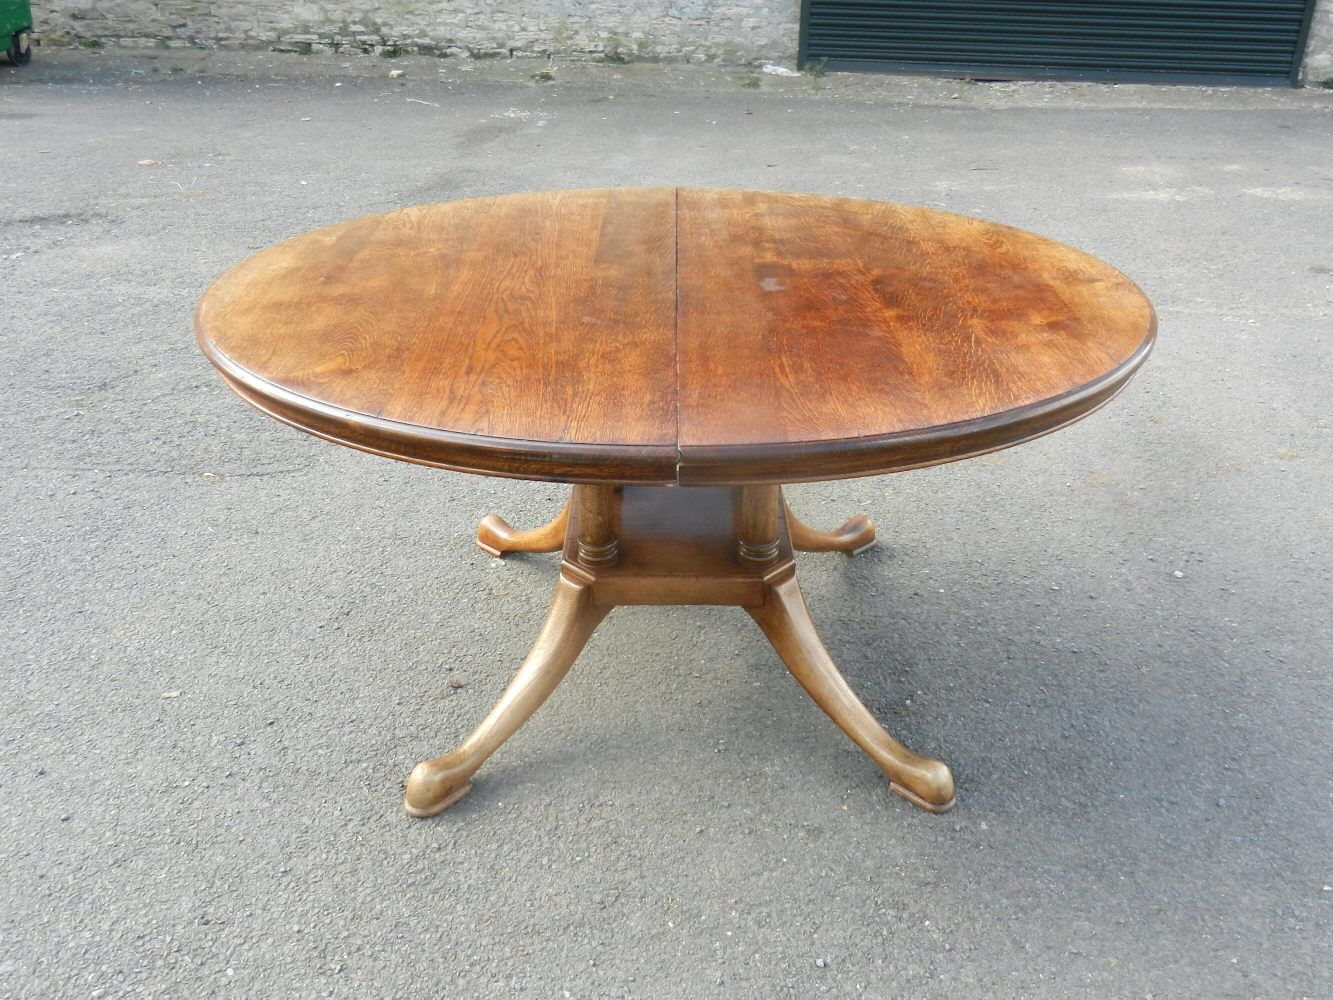 Antique Furniture Warehouse Well Designed Georgian Styled Oval Formed Oak Pedestal Extending Dining Table